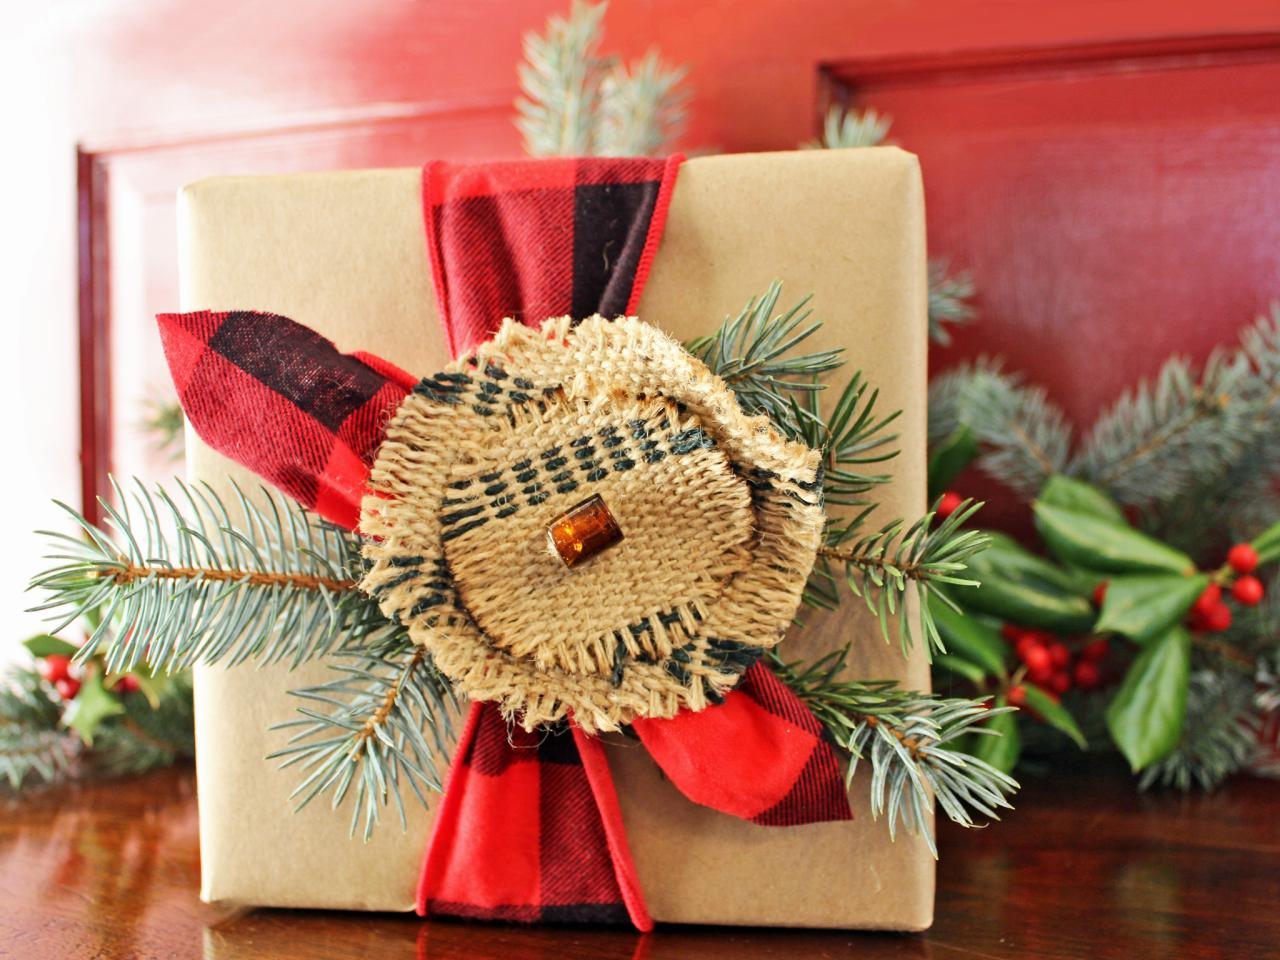 original_Camille-Smith-rustic-plaid-gift-wrap2